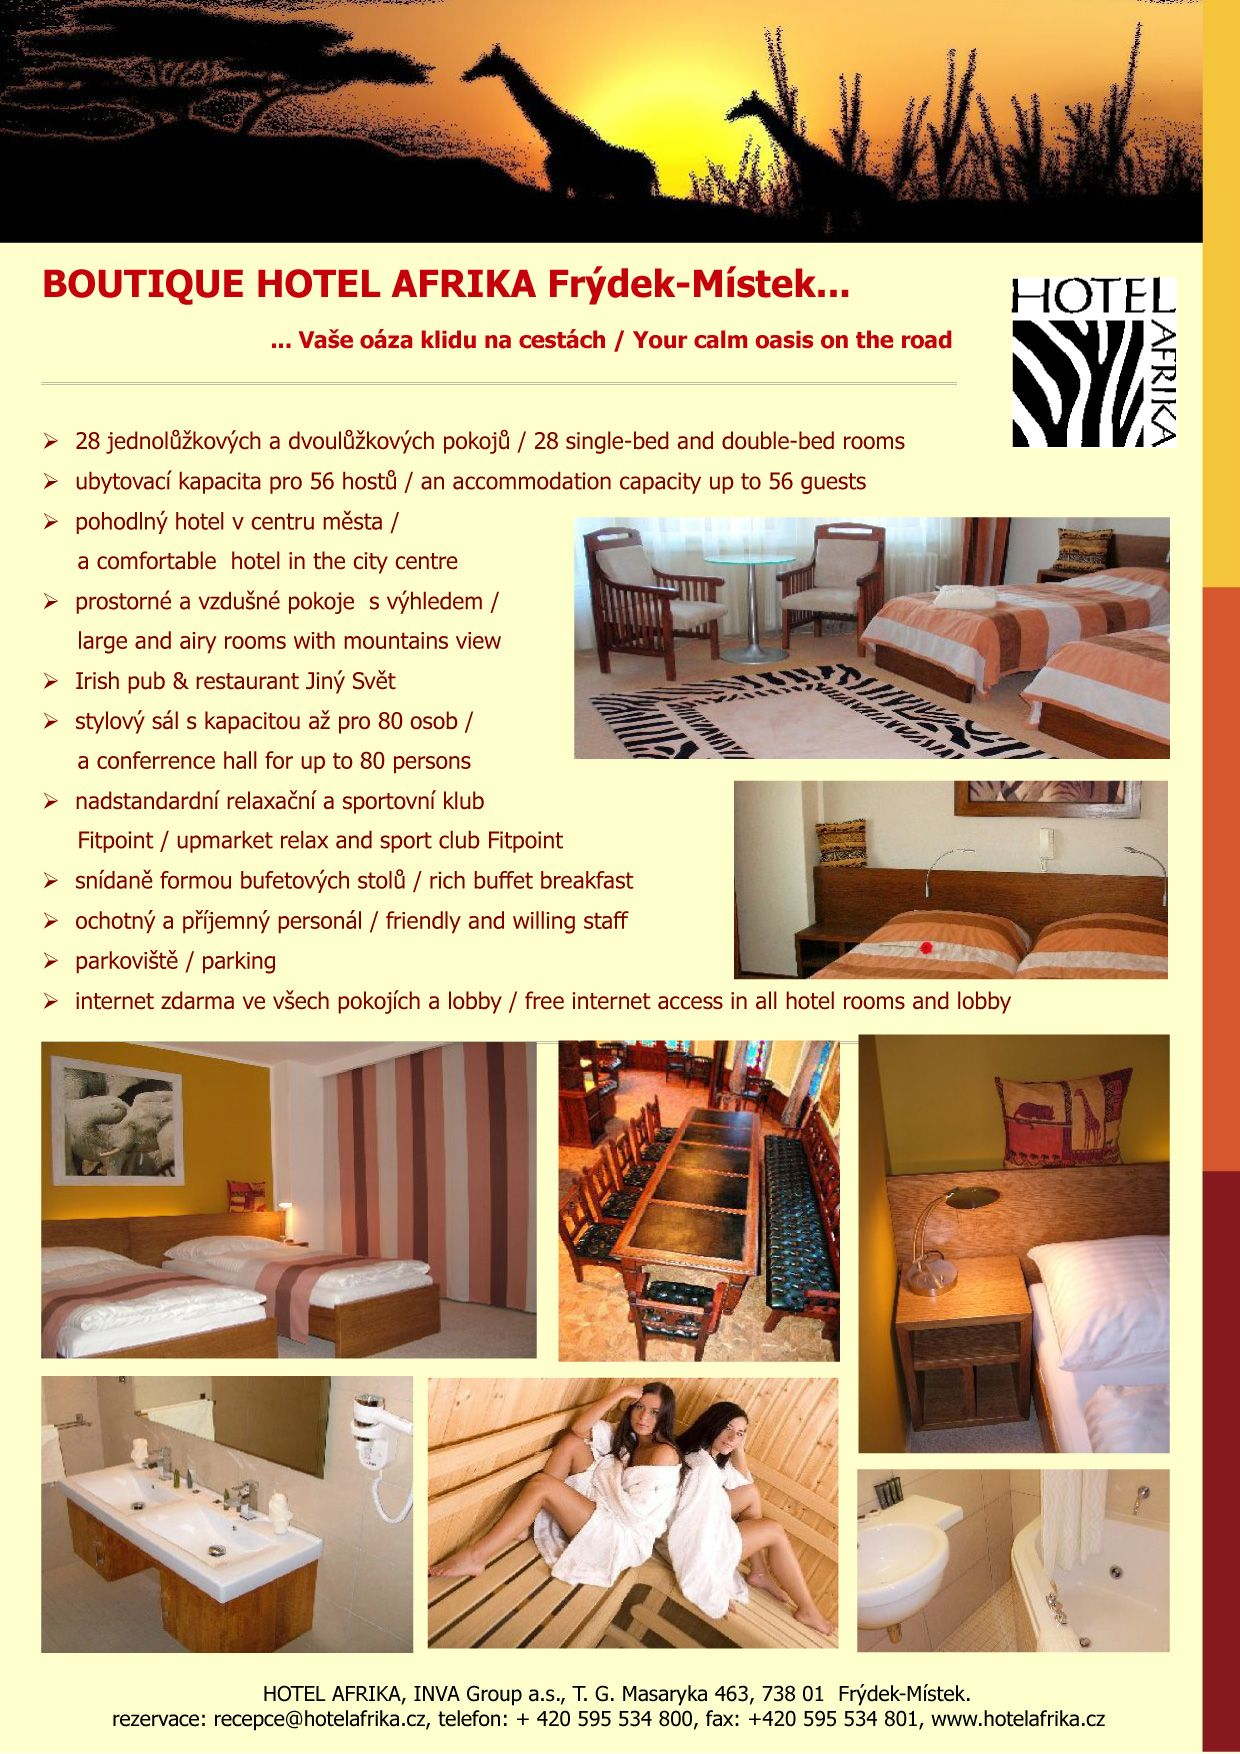 Twin Bed Hotel Room: Hotel-factsheet2.jpg (1240×1754) (With Images)